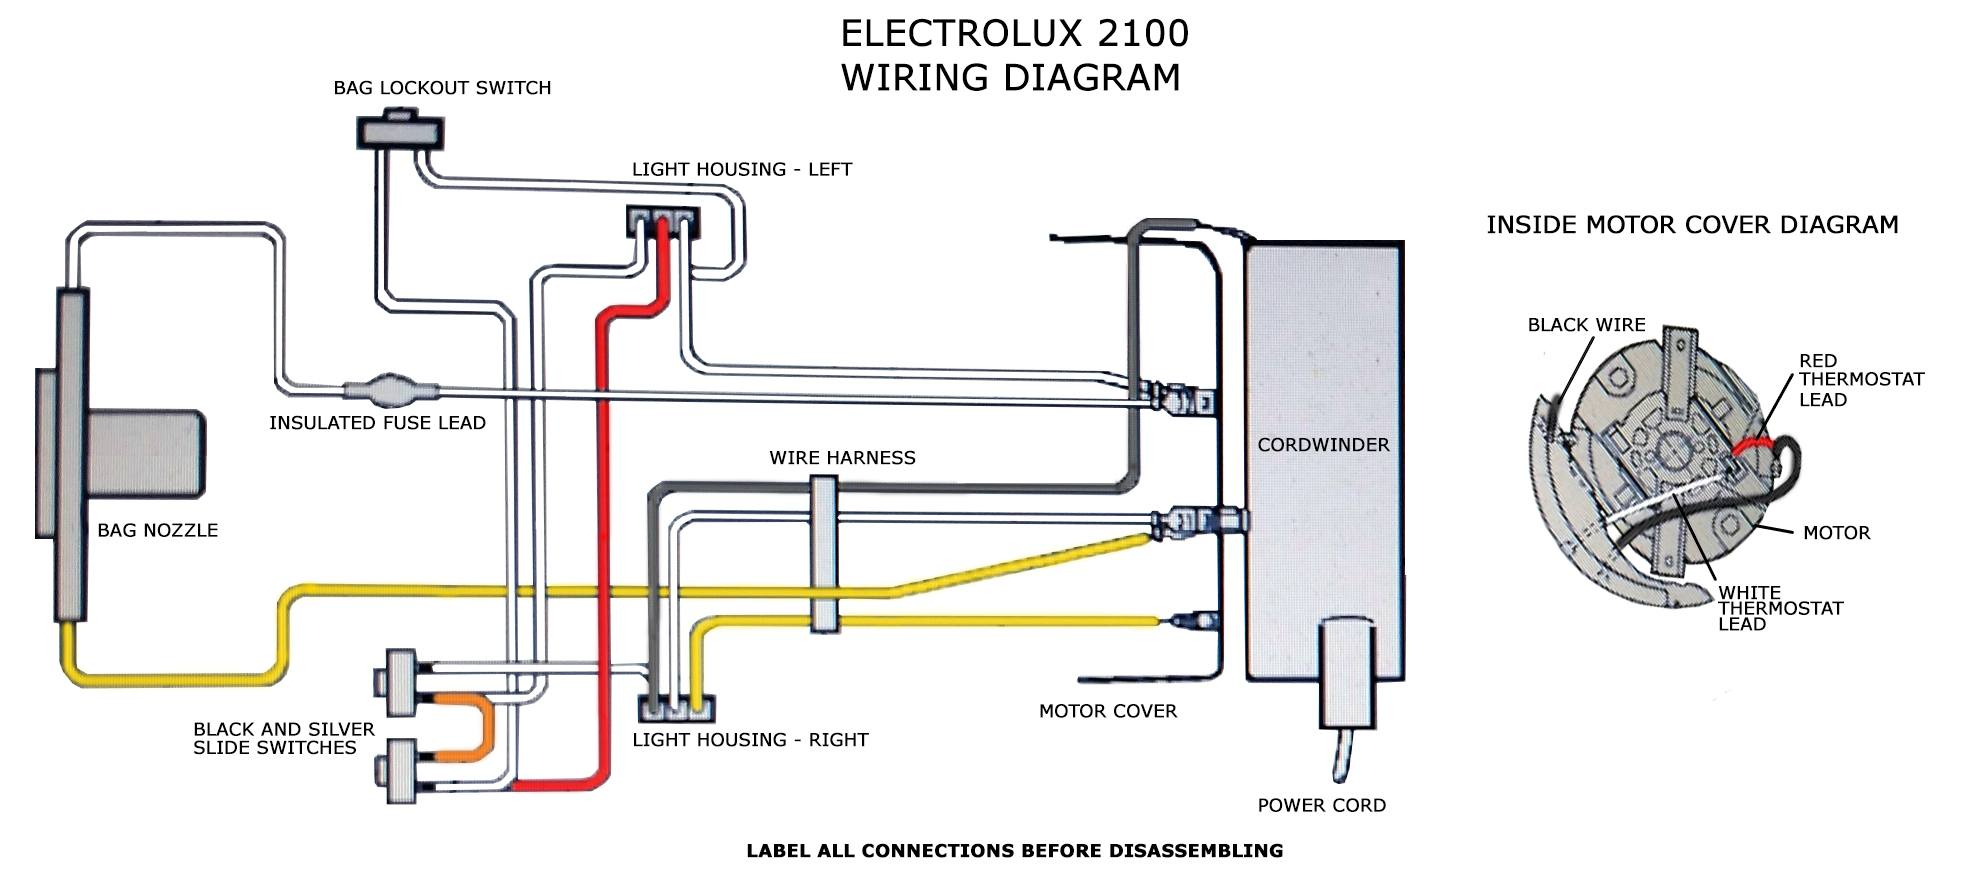 electrolux wiring diagram on vacuum telephone jack color code dc17 oreck xl dyson motor clark